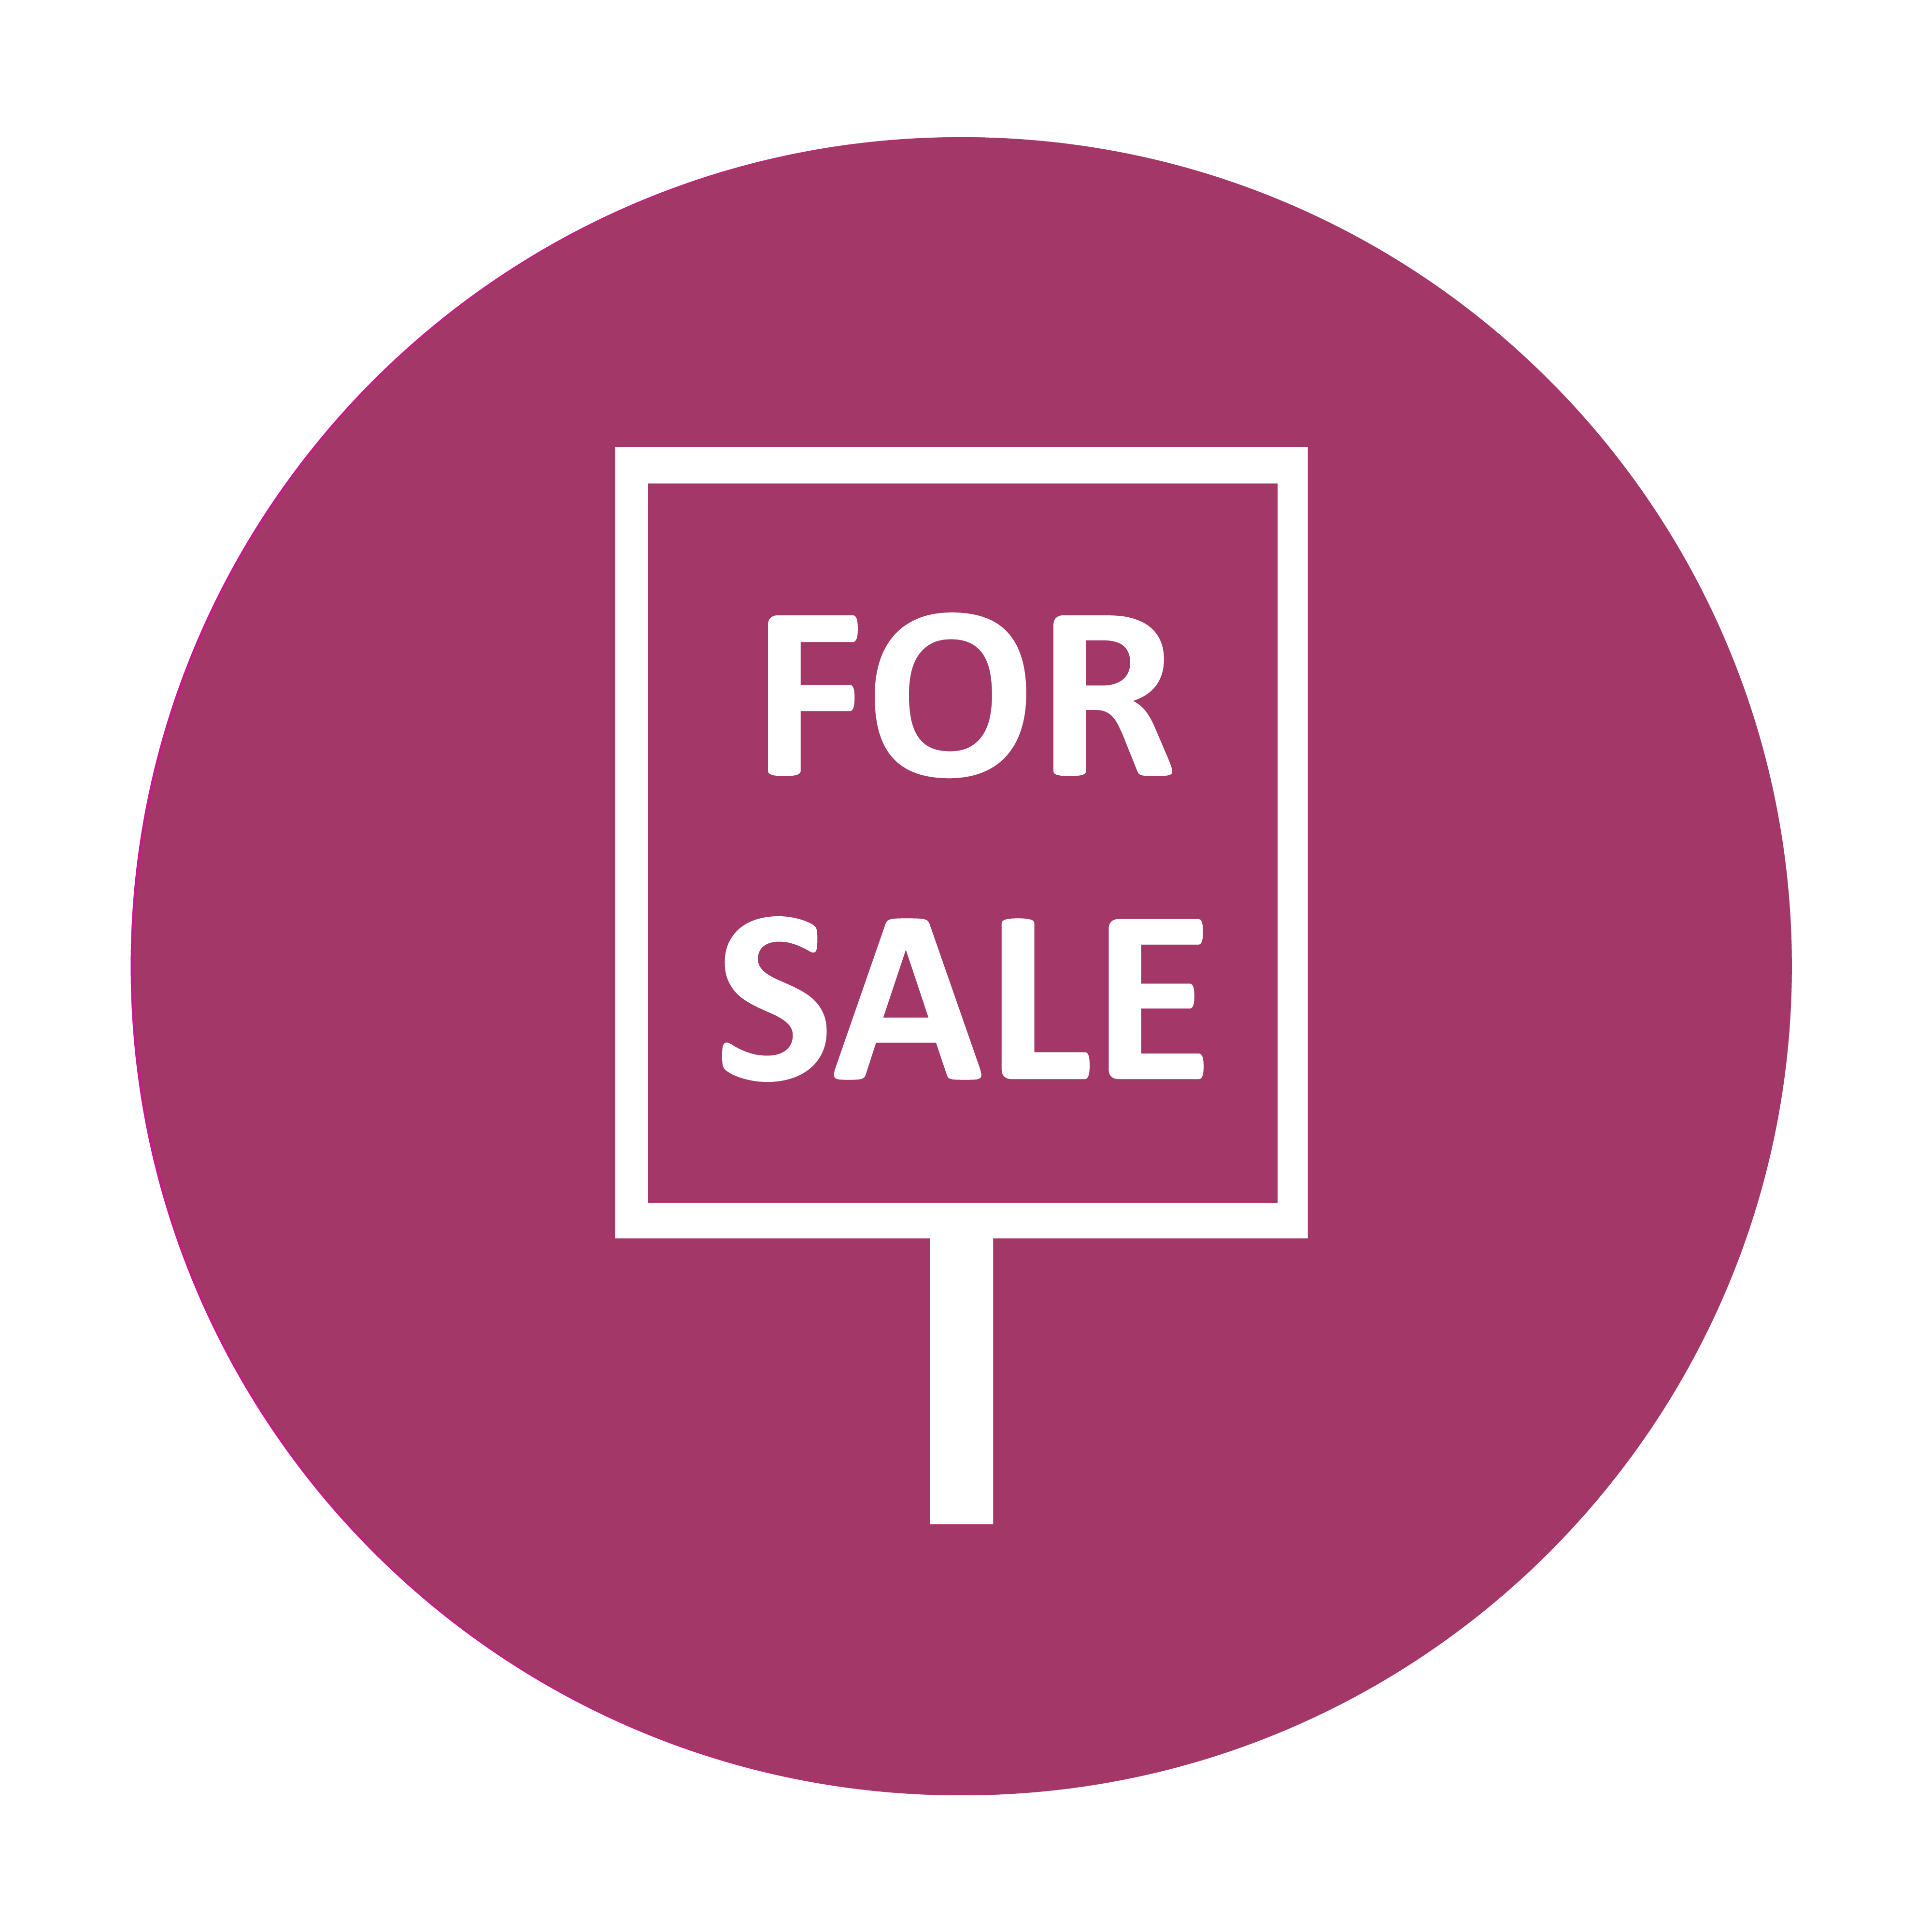 marketing_icons_for_sale_board